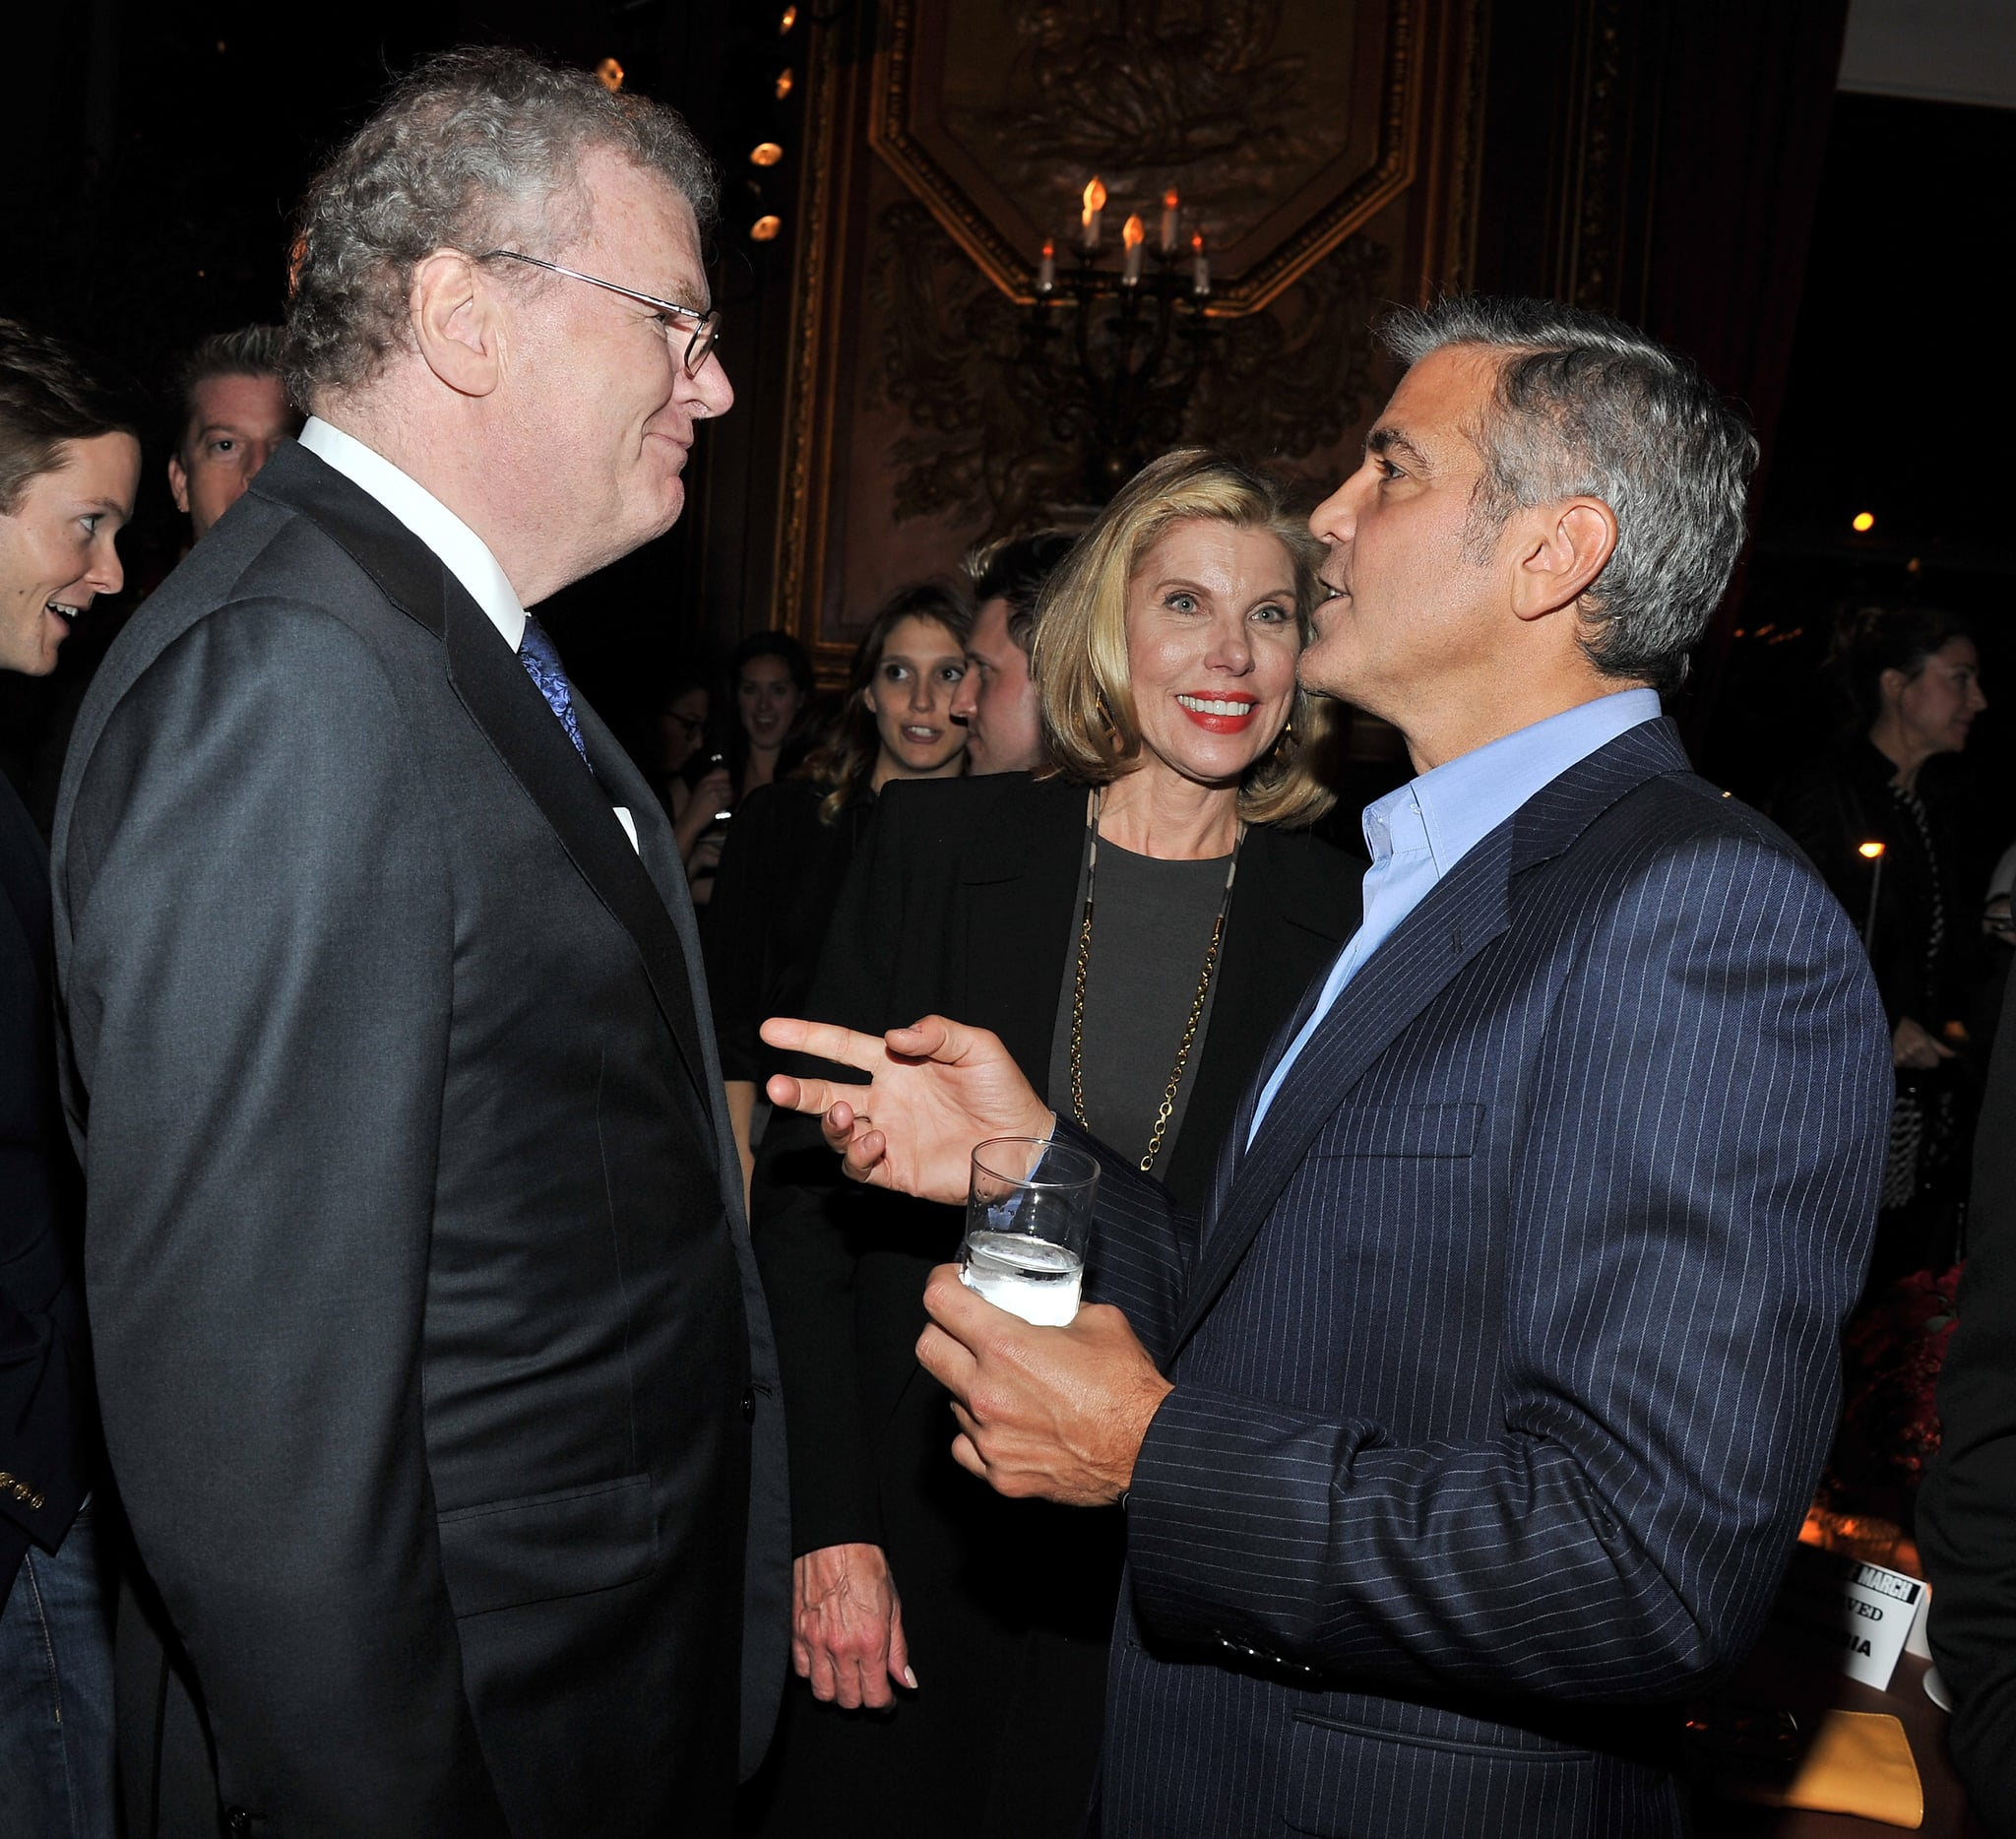 Sony Corporation chairman, president, and CEO Sir Howard Stringer, Christine Baranski, and George Clooney chat at the afterparty for the premiere of The Ides of March.